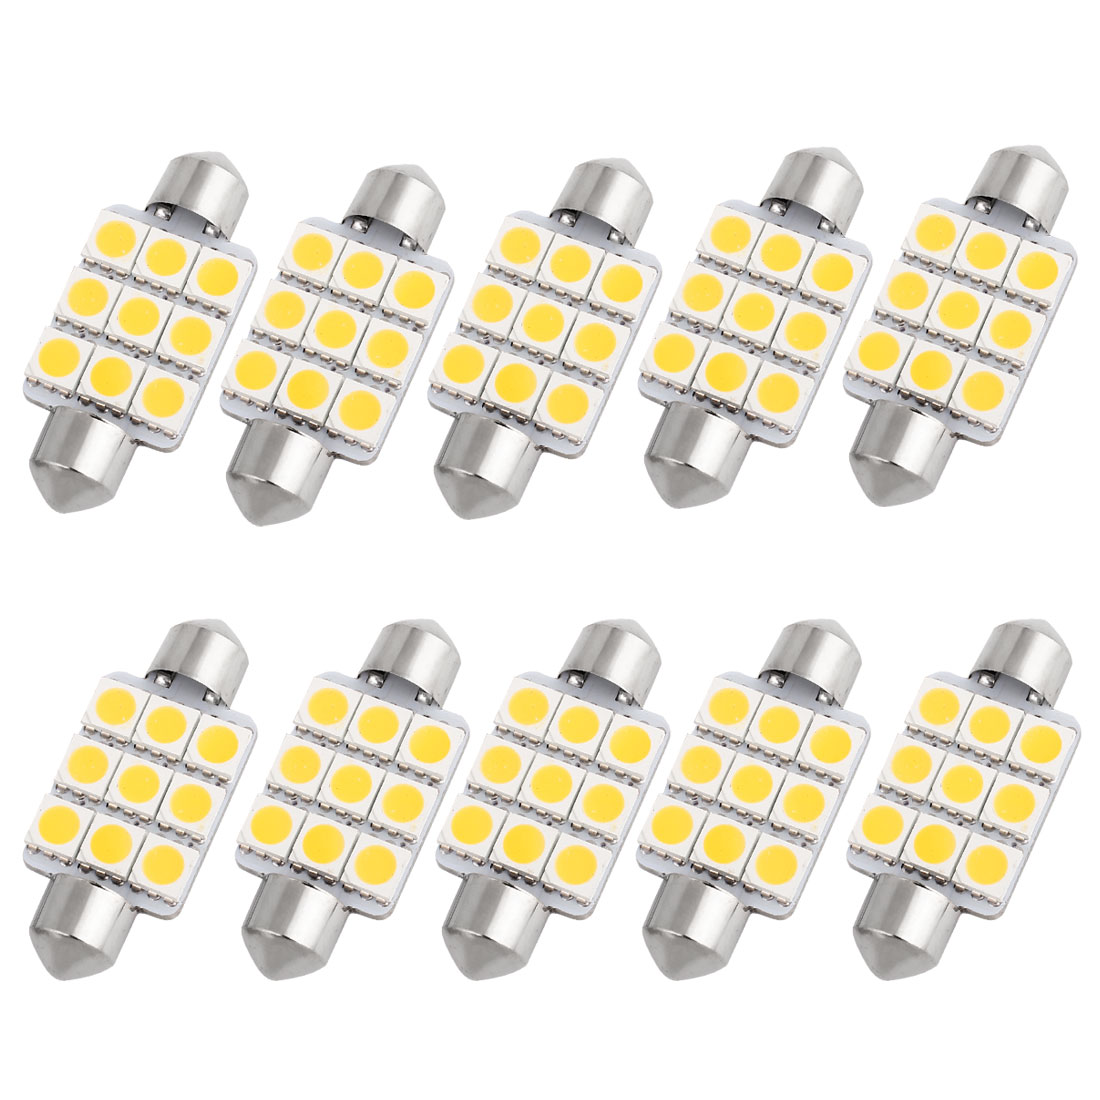 "10 Pcs 39mm 1.54"" 5050 SMD 9-LED Warm White Festoon Dome Light Bulb DE3425 DE3423 Internal"